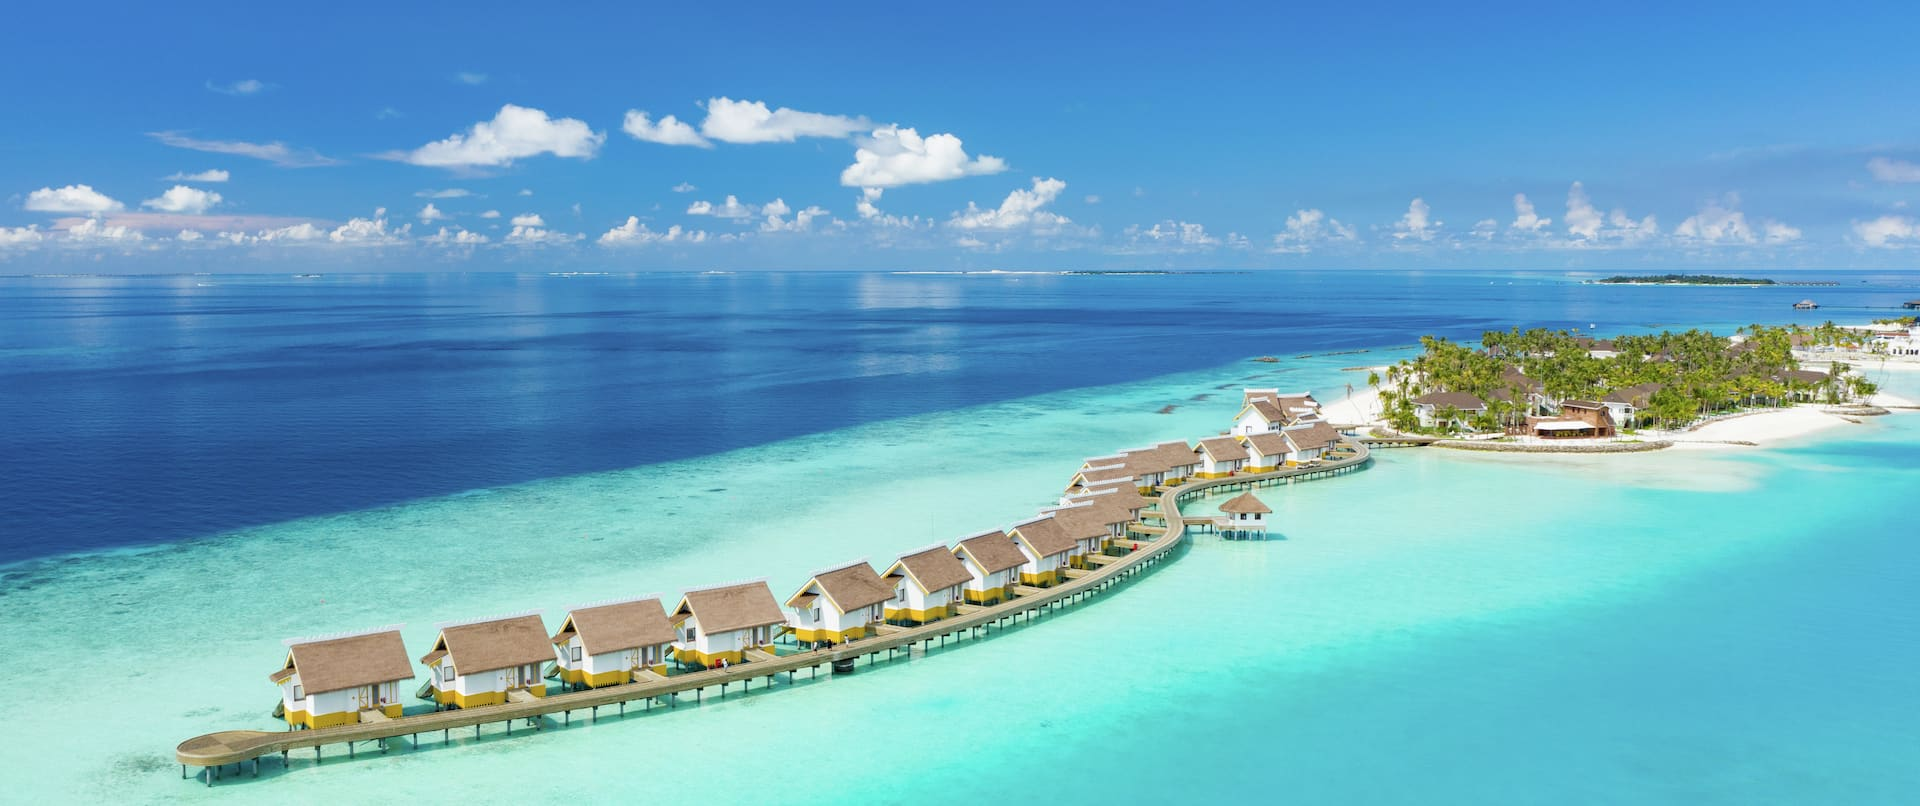 SAii Lagoon Maldives, Curio Collection by Hilton -Jumbo Travel-island view